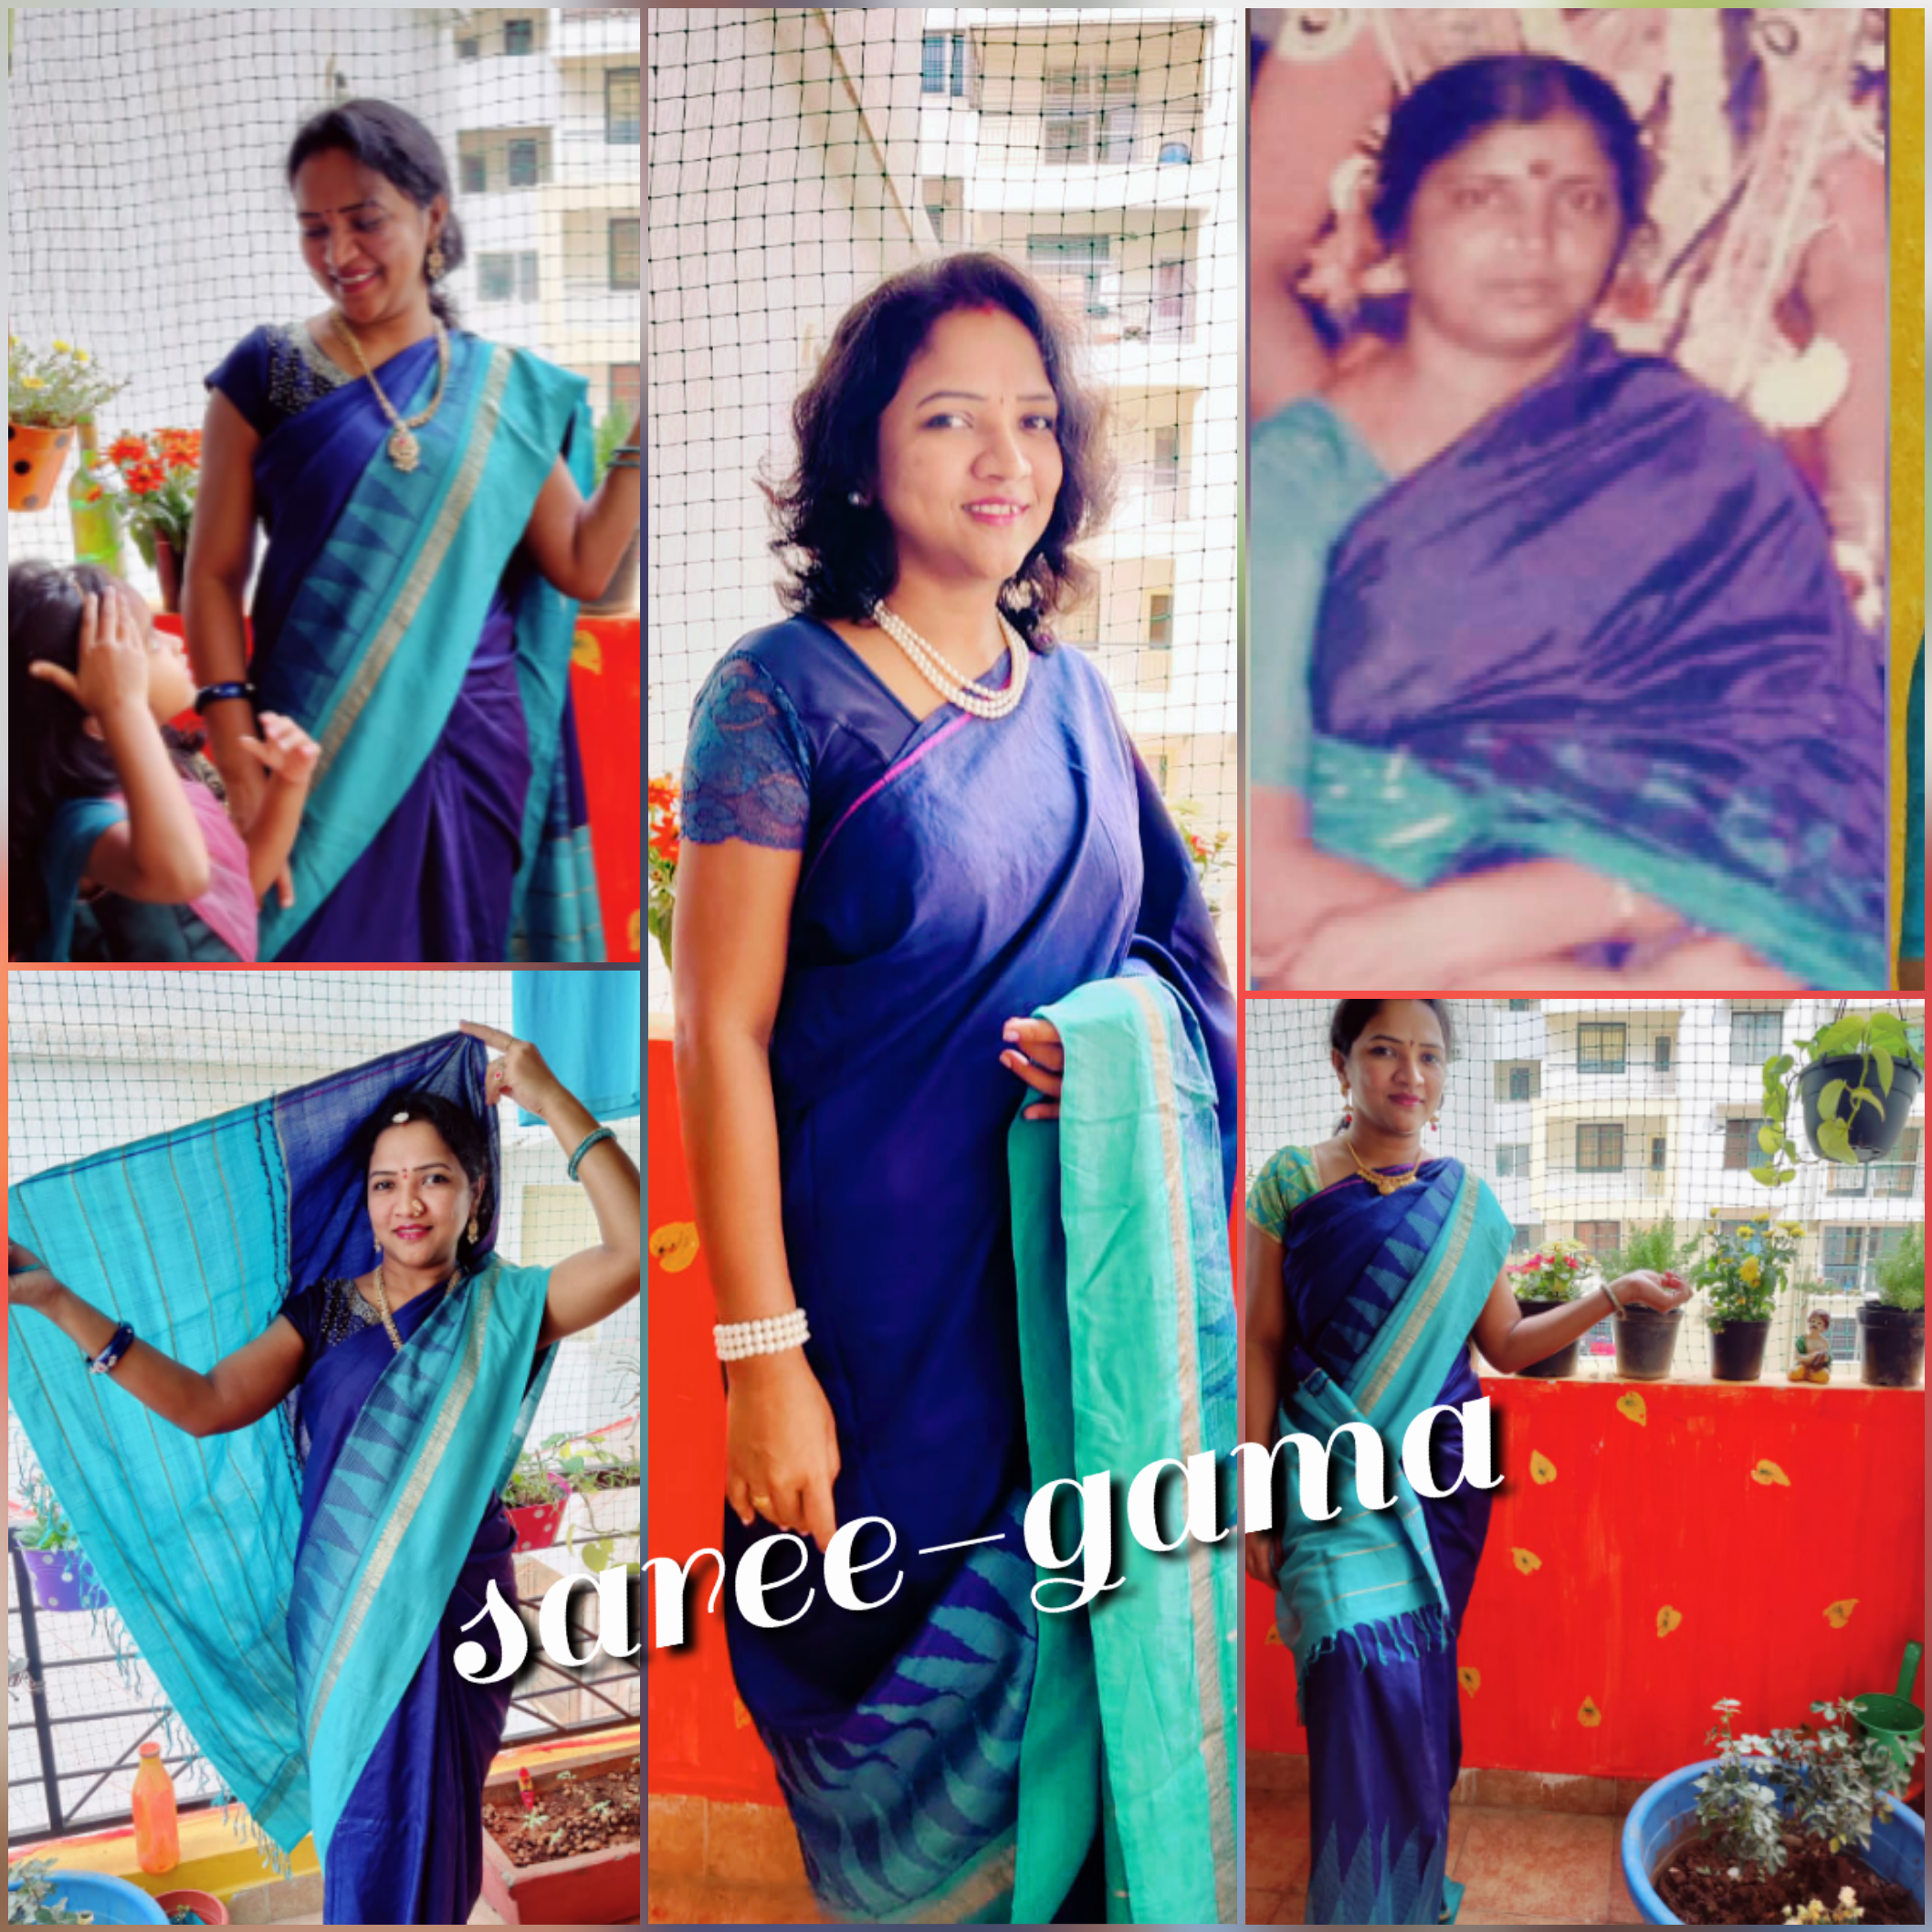 Saree-gama grandmother's saree